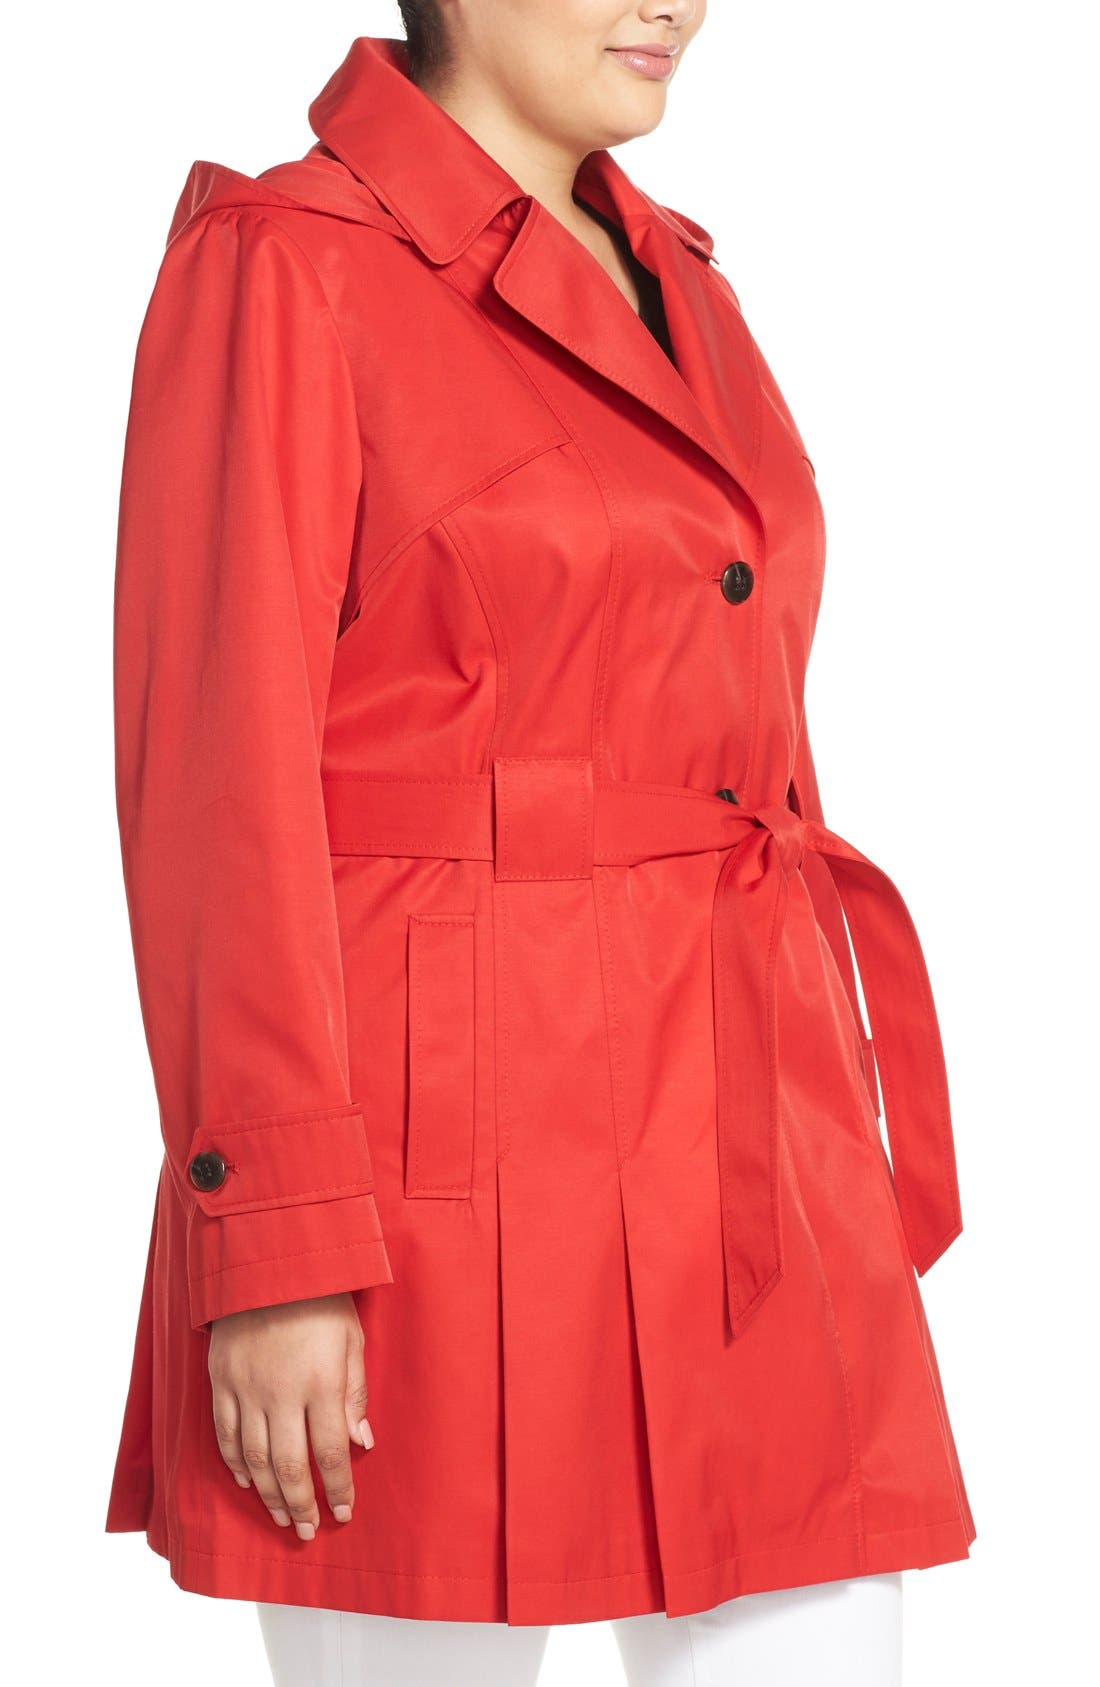 'Scarpa' Single Breasted Trench Coat,                             Alternate thumbnail 23, color,